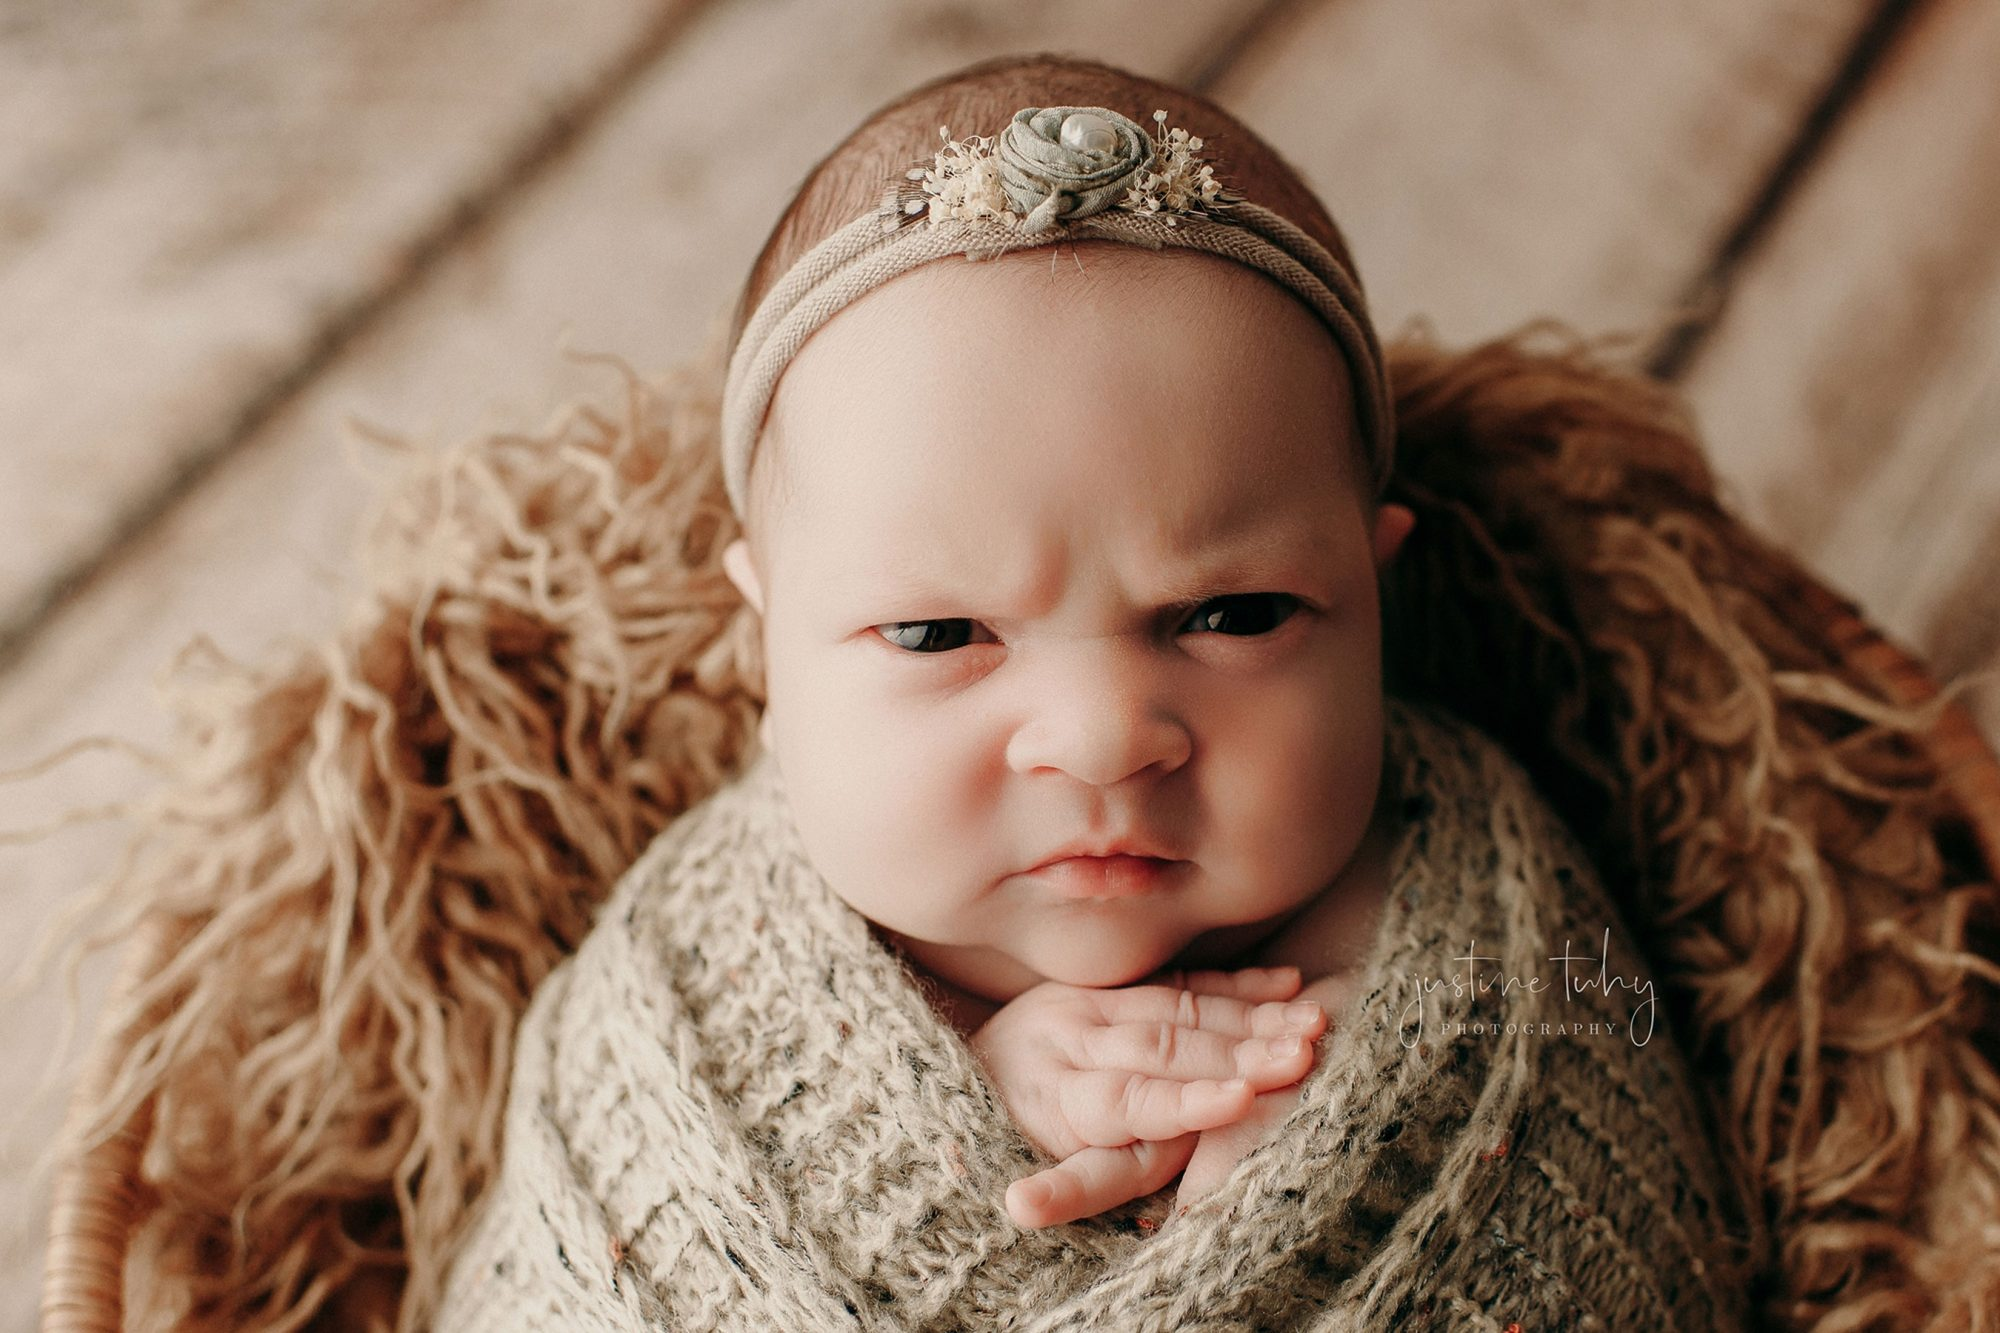 'Mean-Mugging' Baby Doesn't Seem Thrilled to Be Getting Her Photo Taken in Hilarious Photoshoot